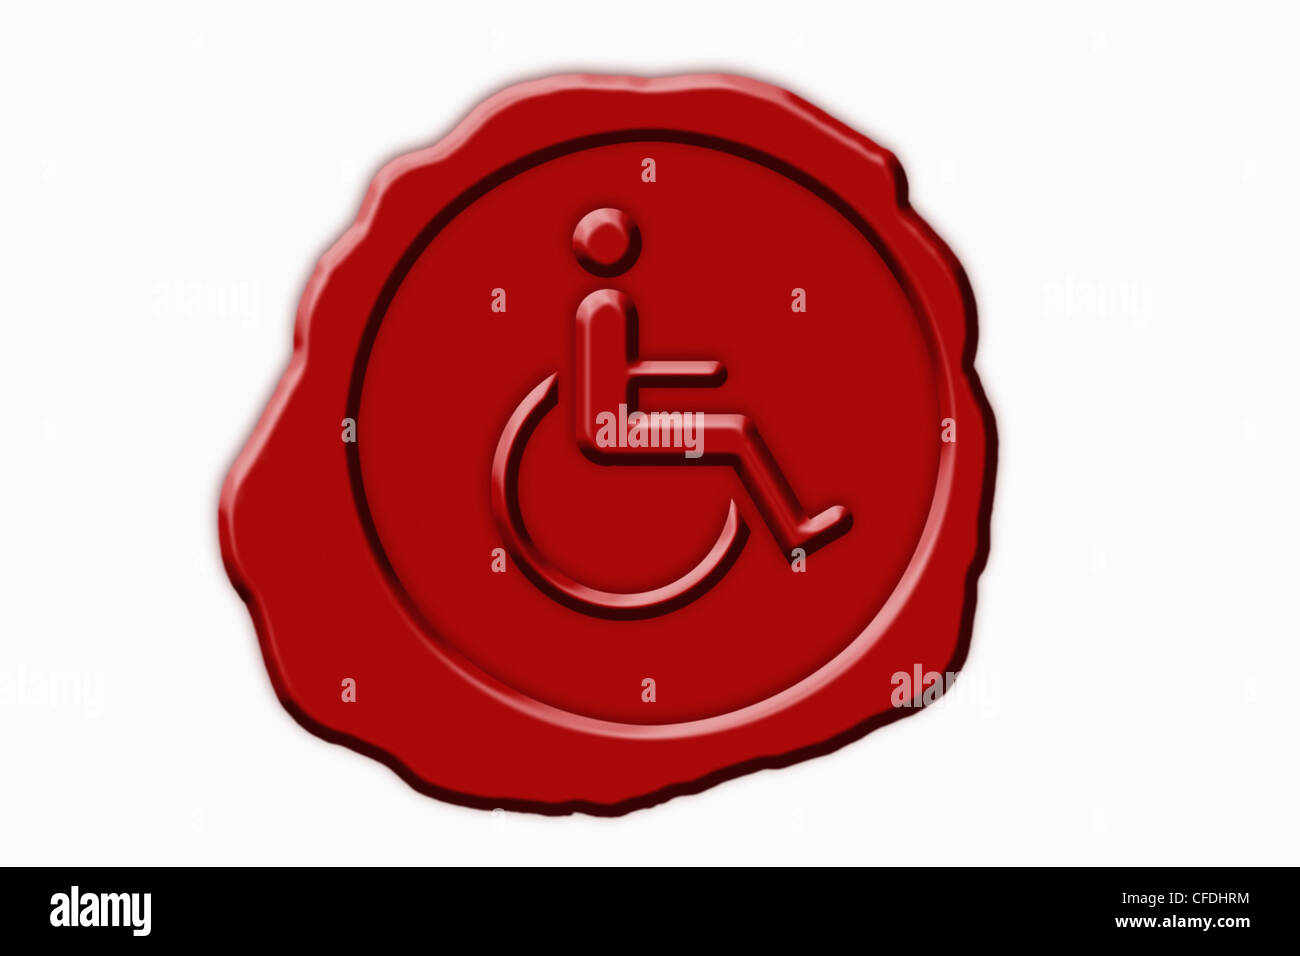 Detail photo of a red seal with a wheelchair user Symbol in the middle - Stock Image